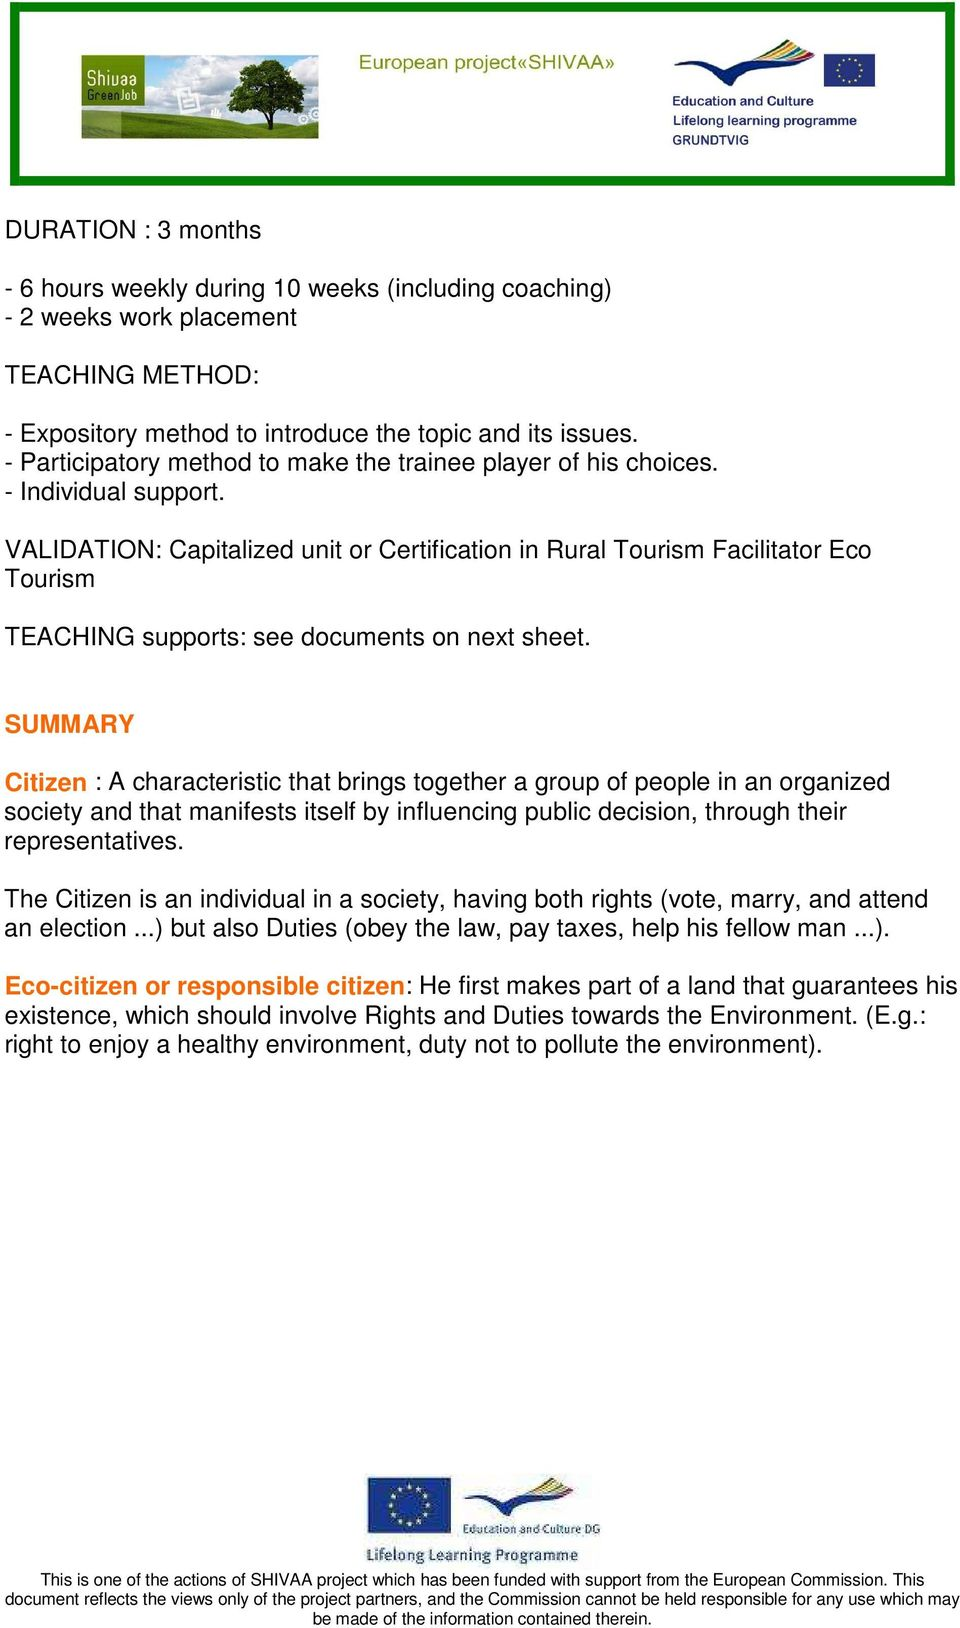 VALIDATION: Capitalized unit or Certification in Rural Tourism Facilitator Eco Tourism TEACHING supports: see documents on next sheet.